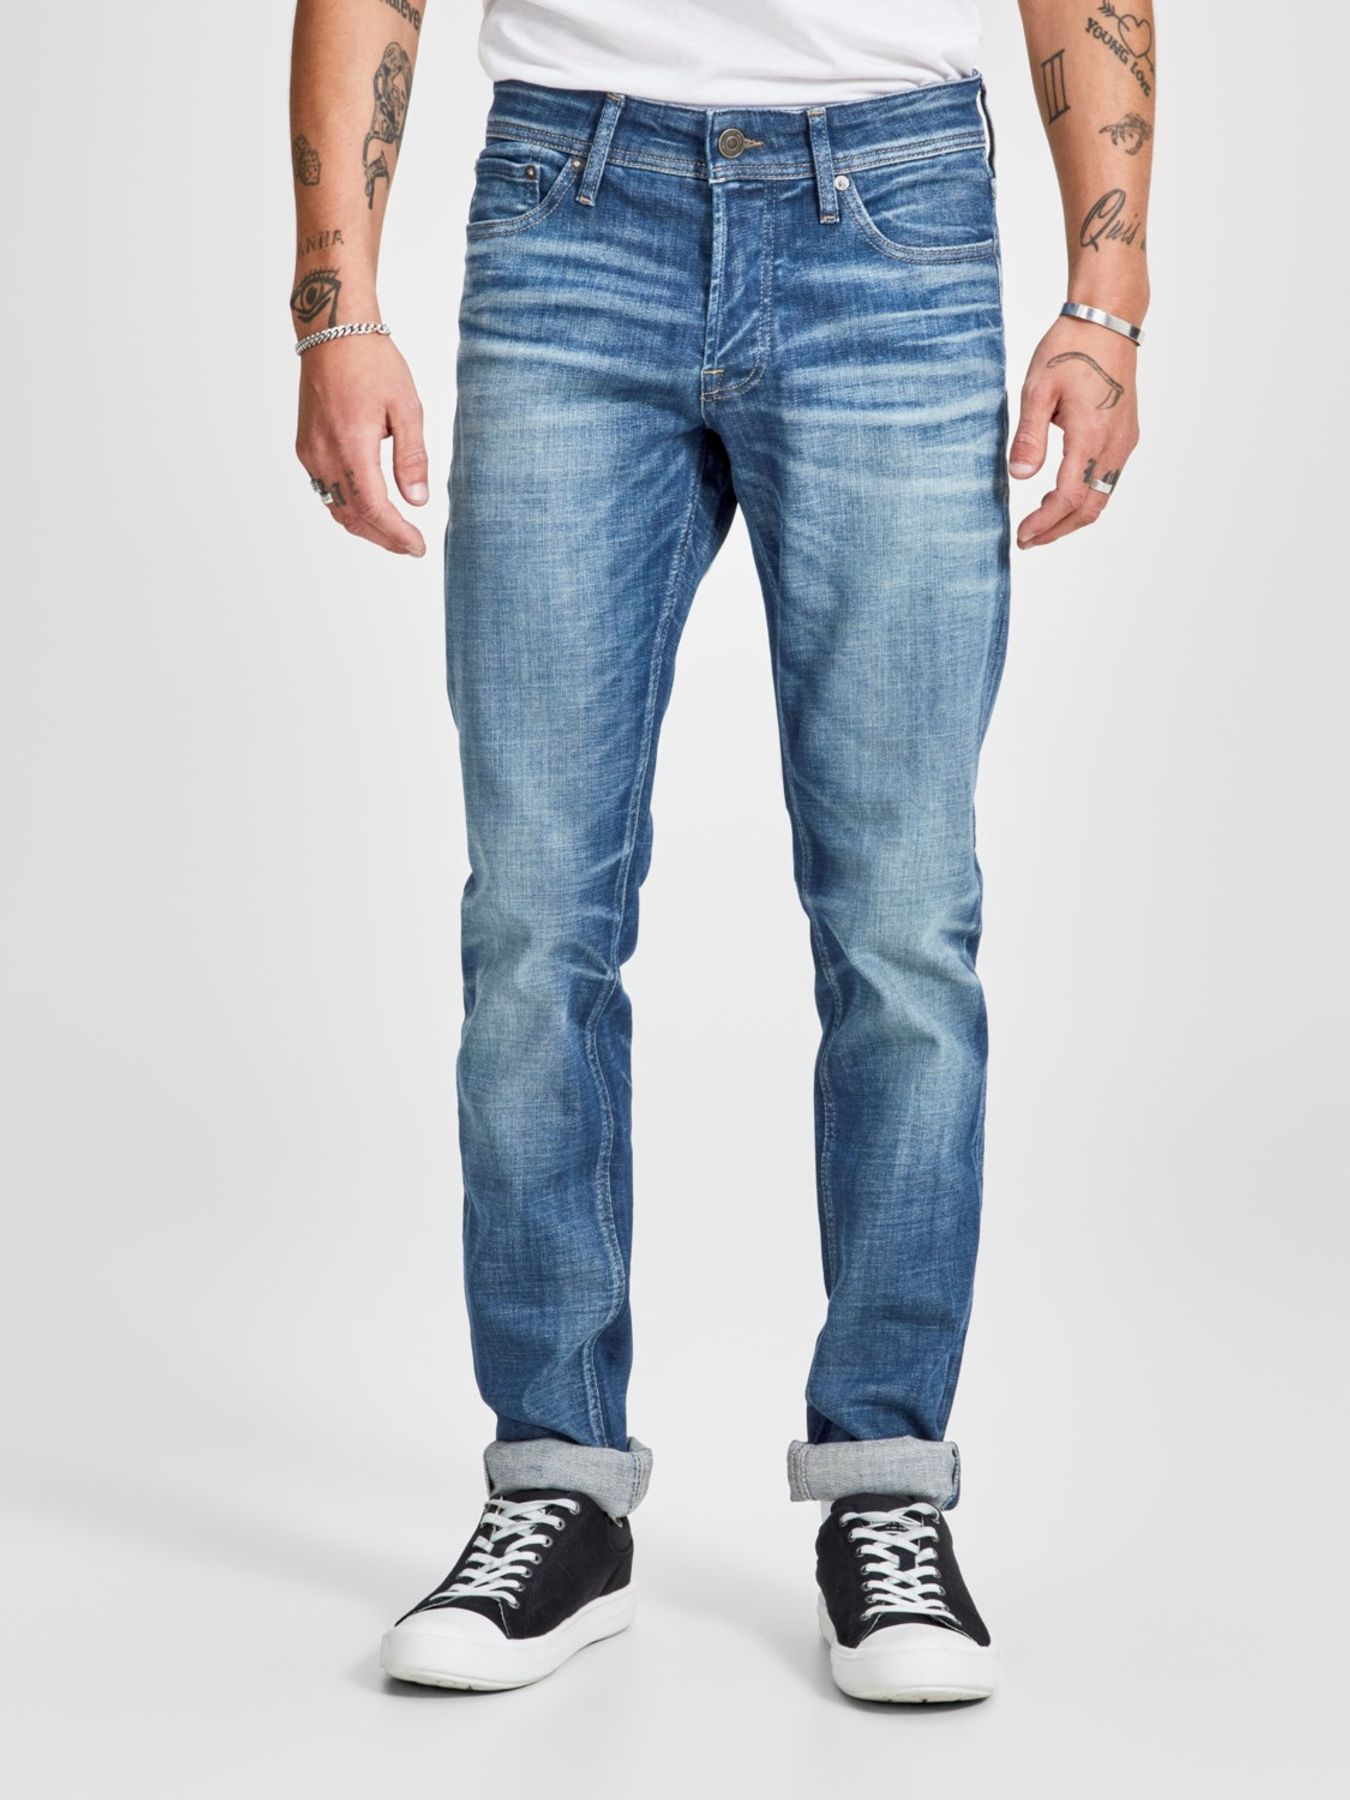 Jack & Jones - Herren Jeans, Slim Fit (Art. 12140285) – Bild 3